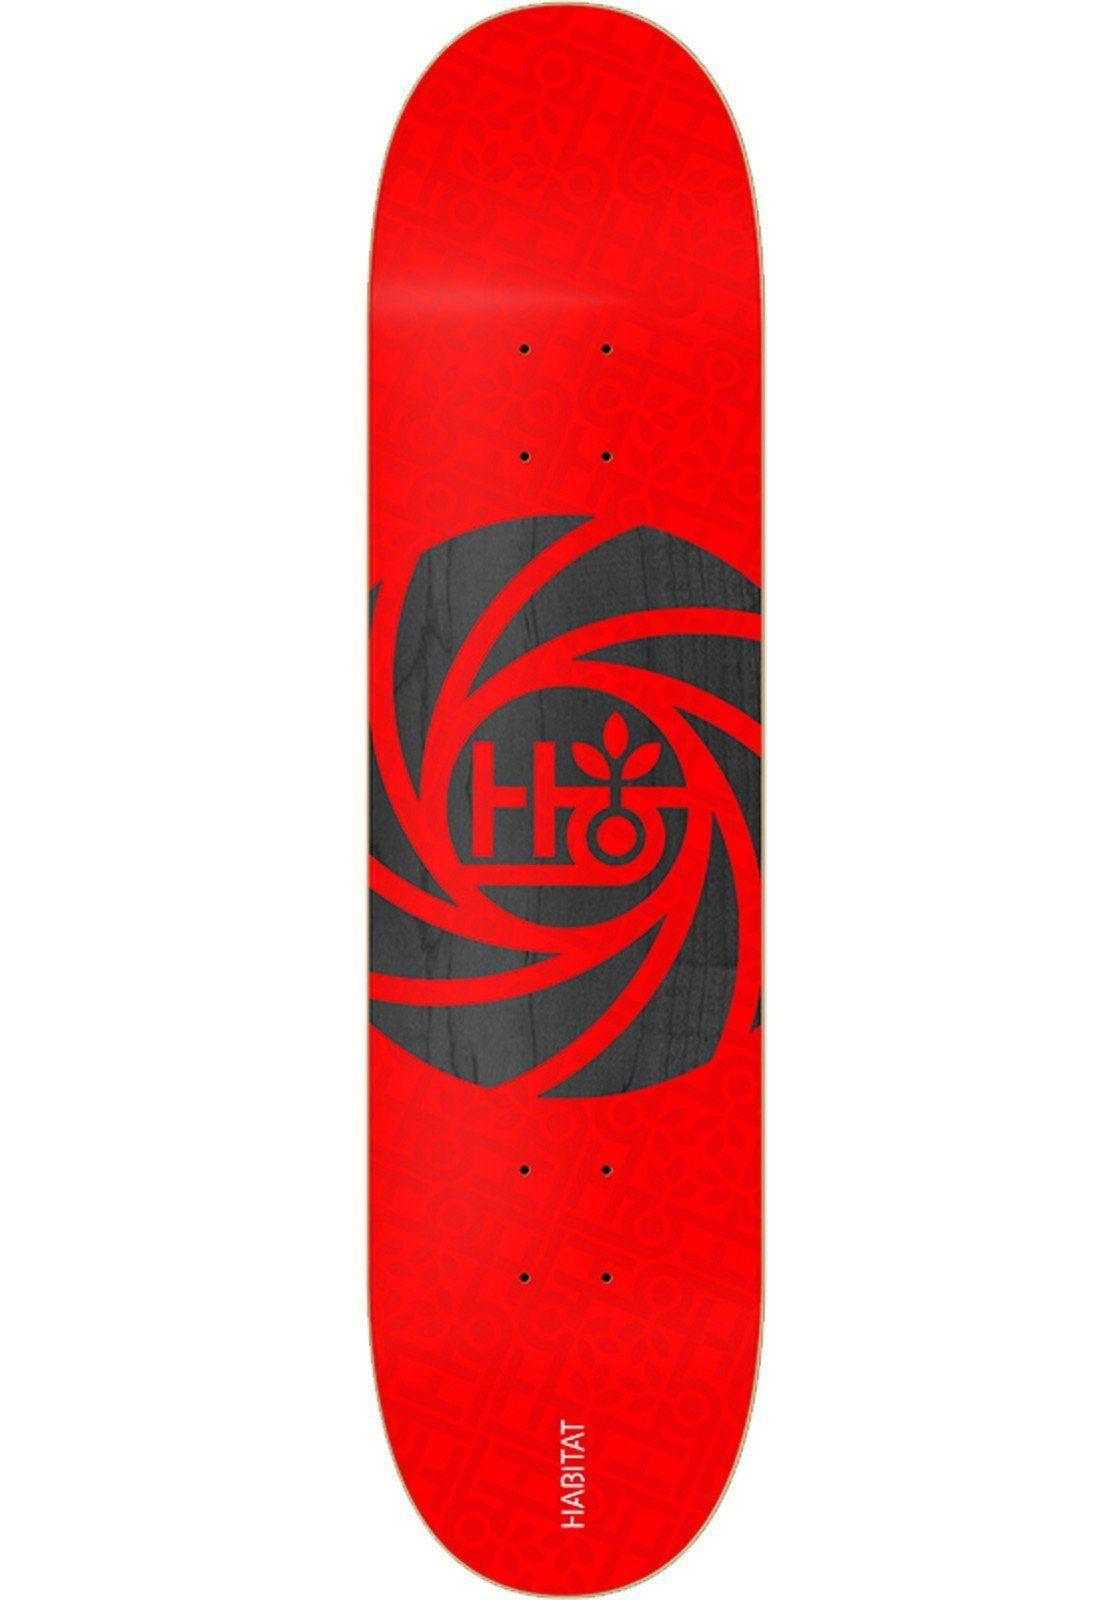 Buy Habitat Optical 8 25 Deck Only At Europe S Sickest Skateboard Store Skateboard Store Skateboard Habitats